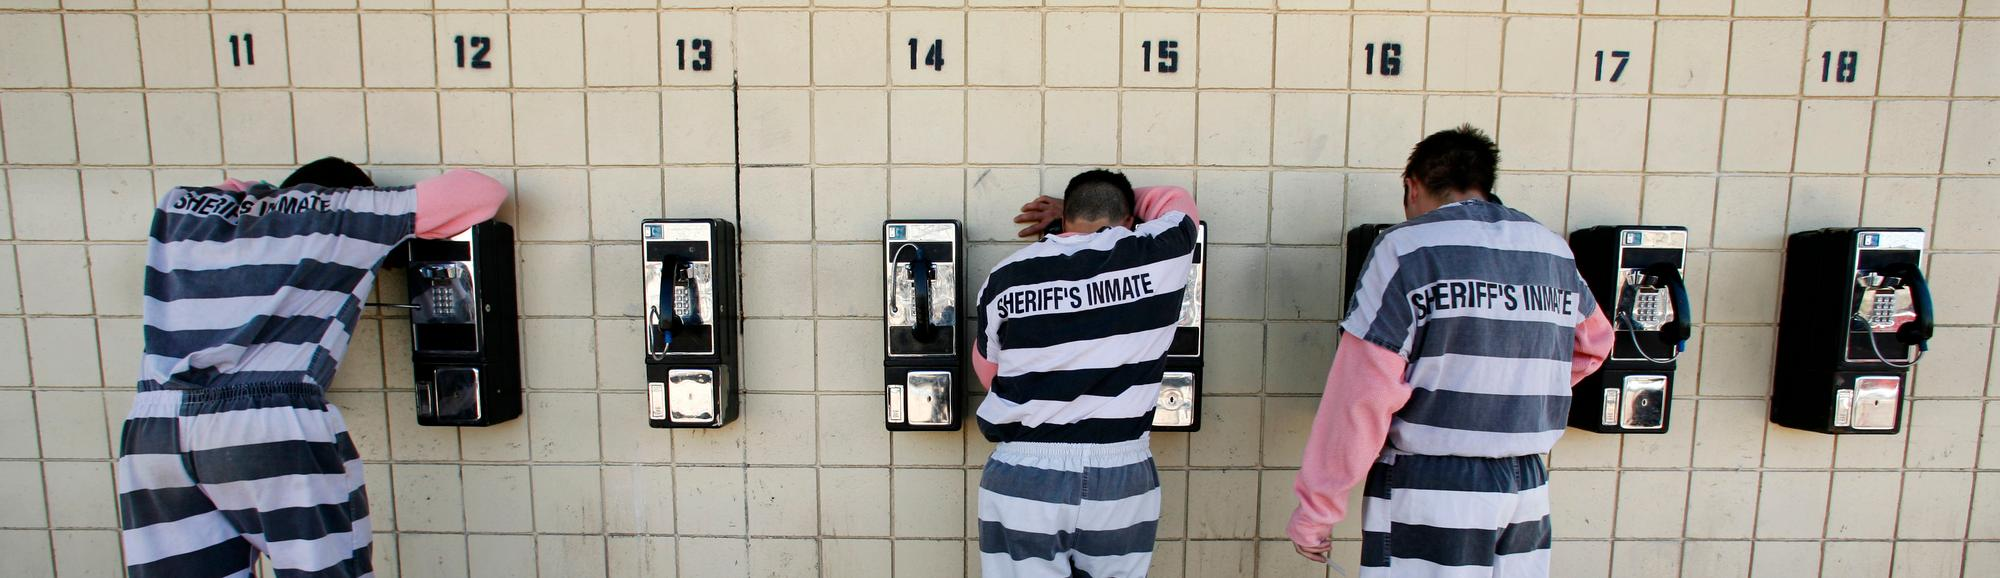 Prison inmate calling companies -  Cutting The High Cost Of Prison Phone Calls Could Also Reduce Reoffender Rates